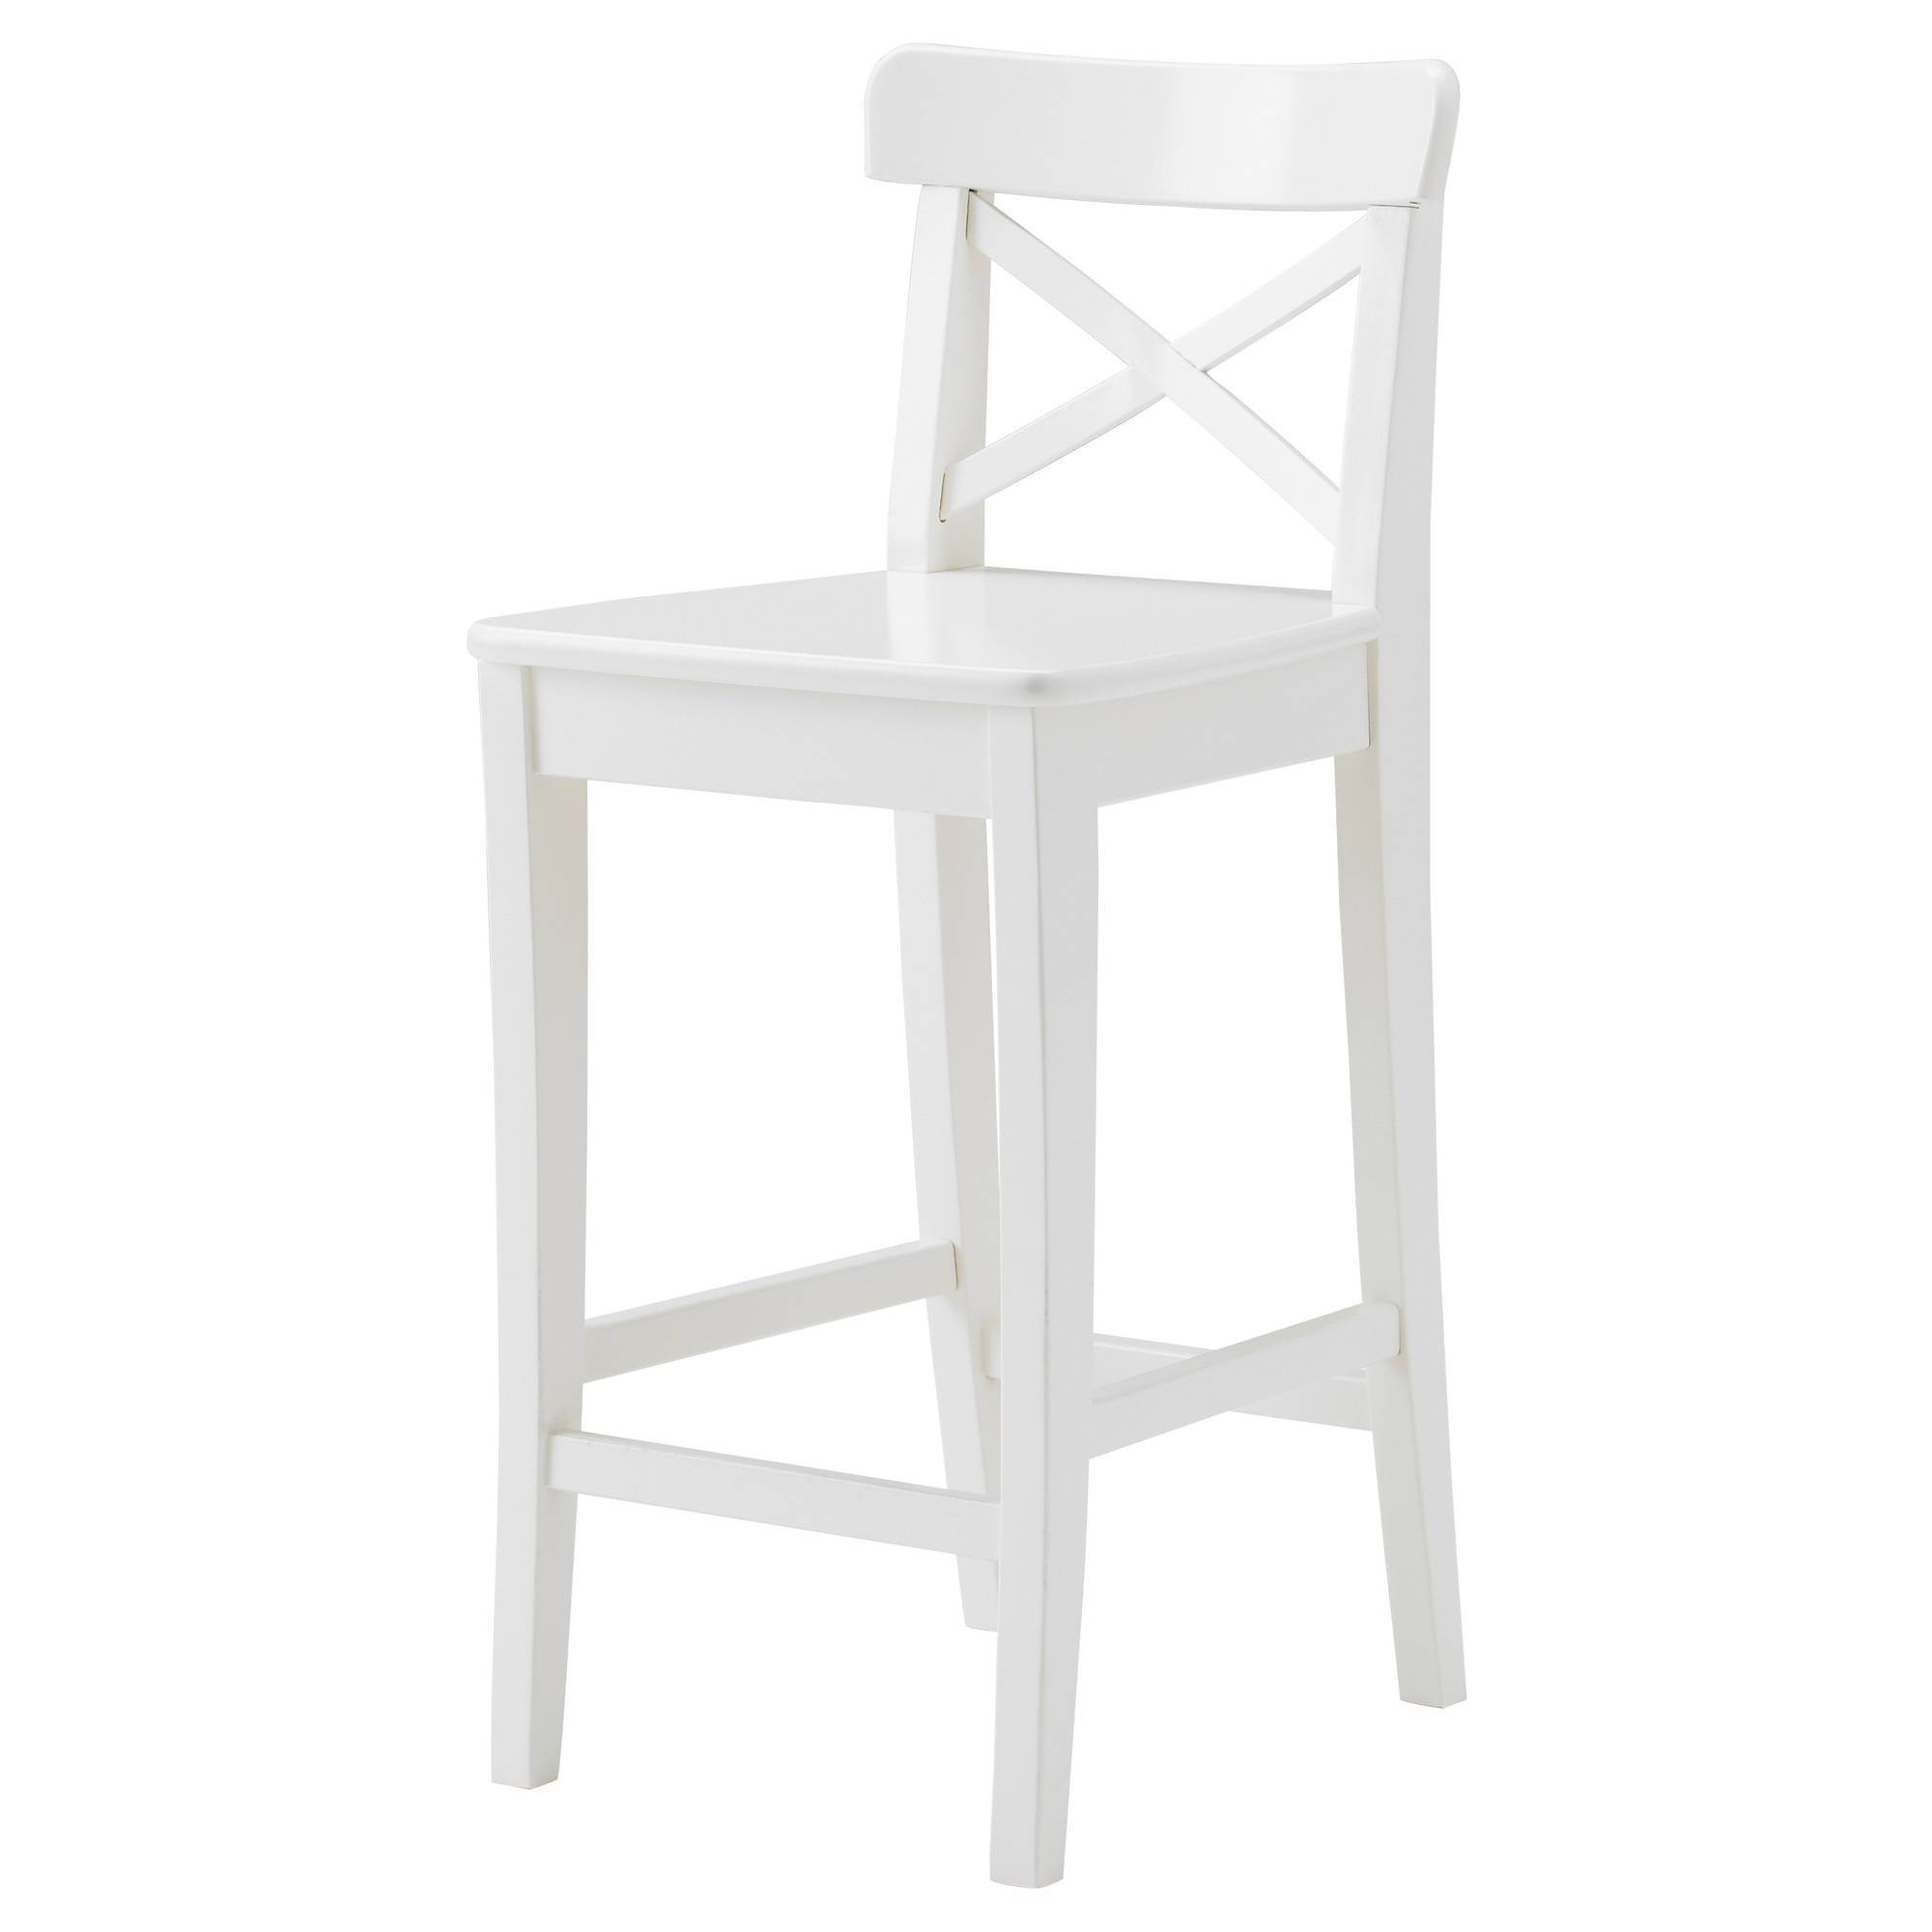 Simple White Wood Bar Stools With Back